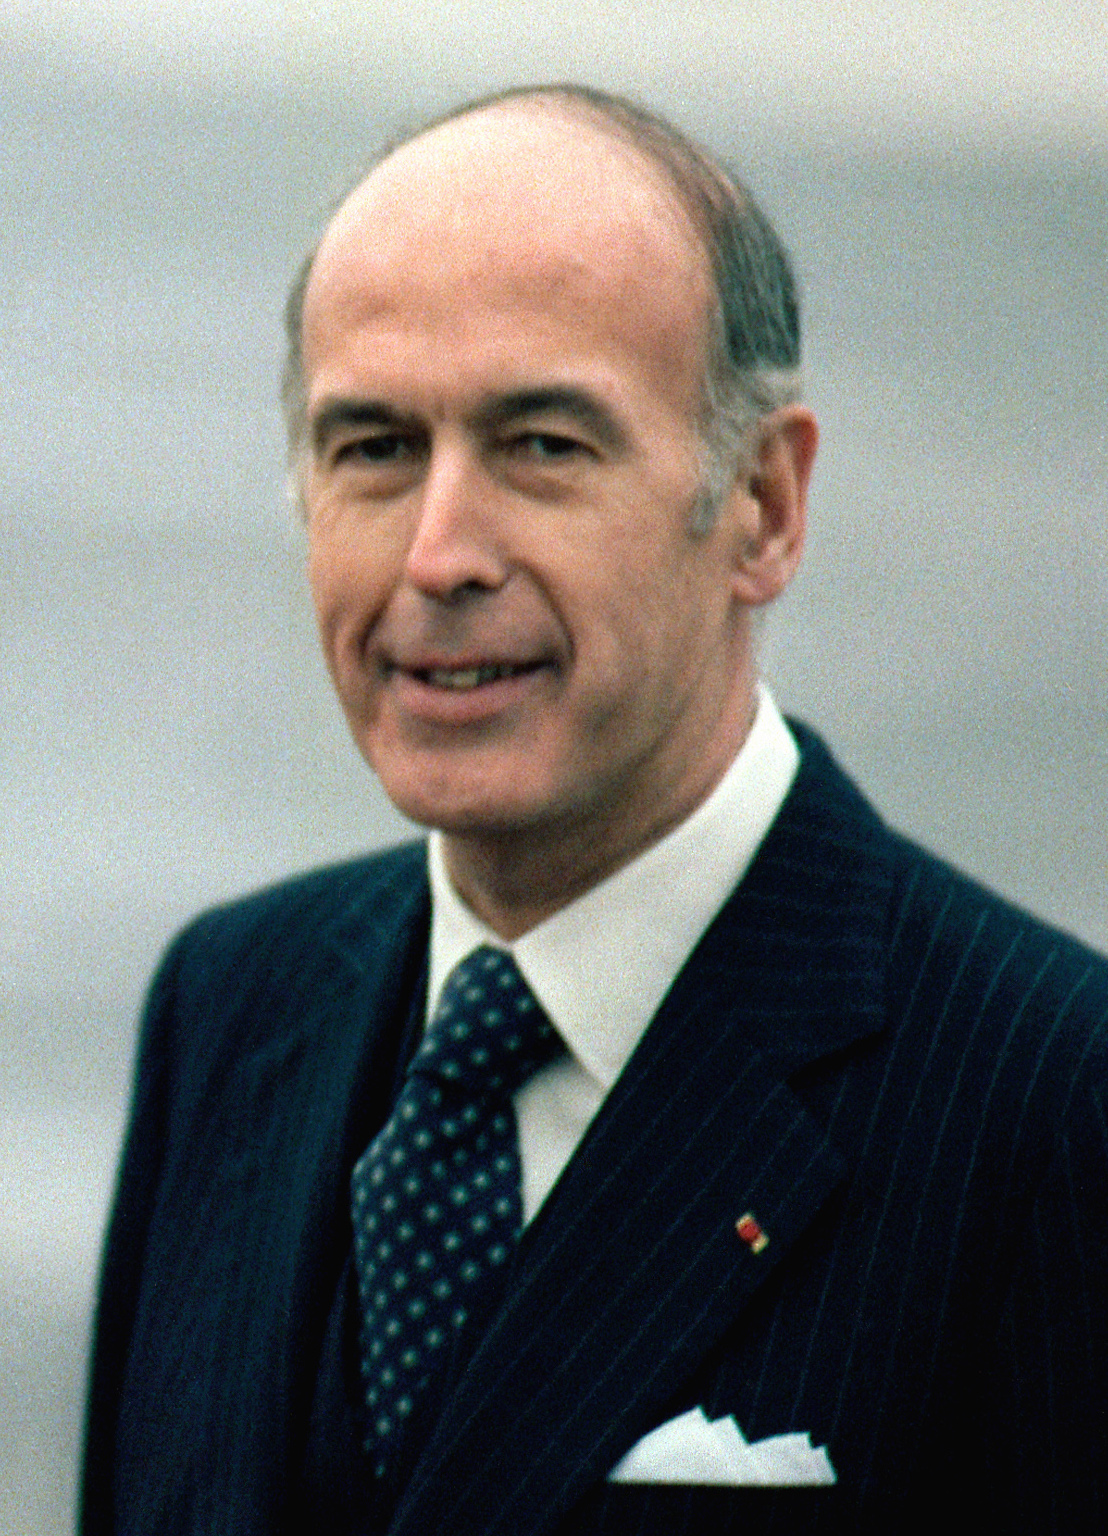 Valéry Giscard d'Estaing tot